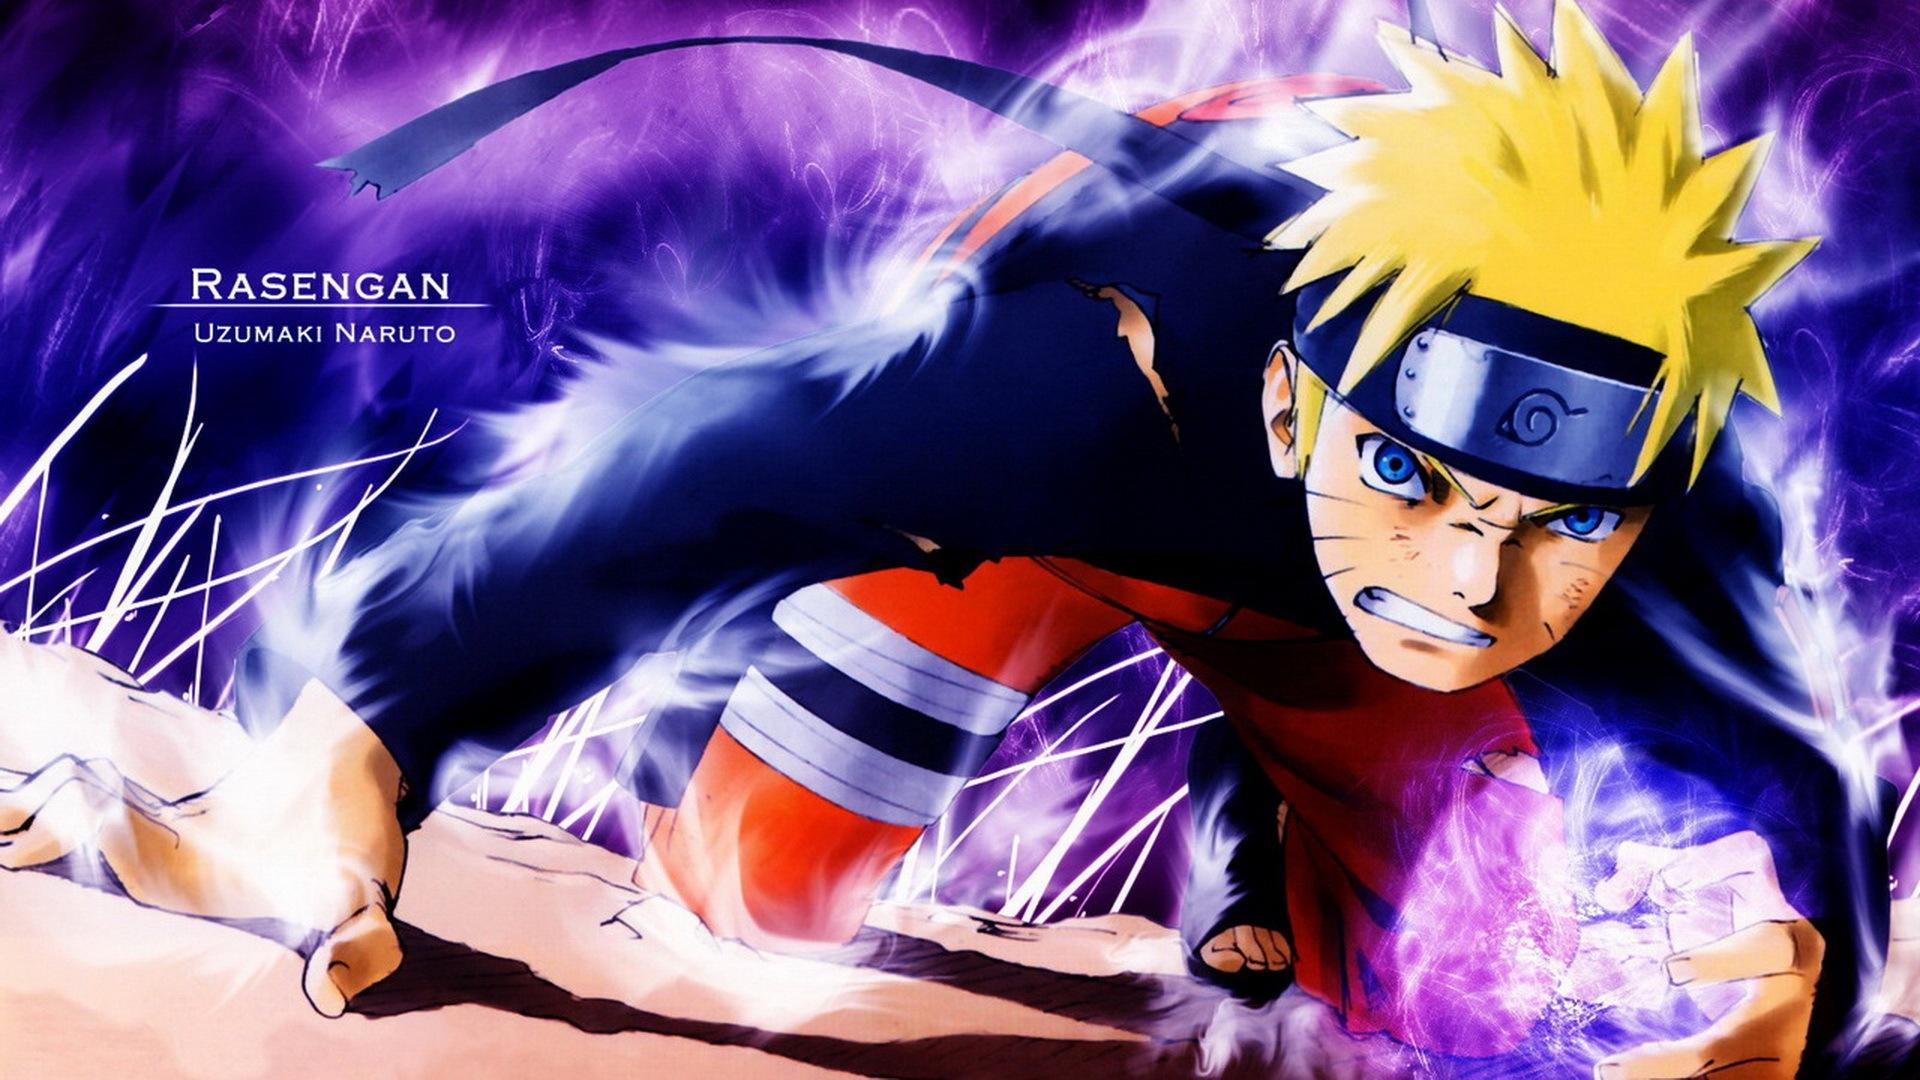 Collection of Awesome Naruto Wallpaper on HDWallpapers